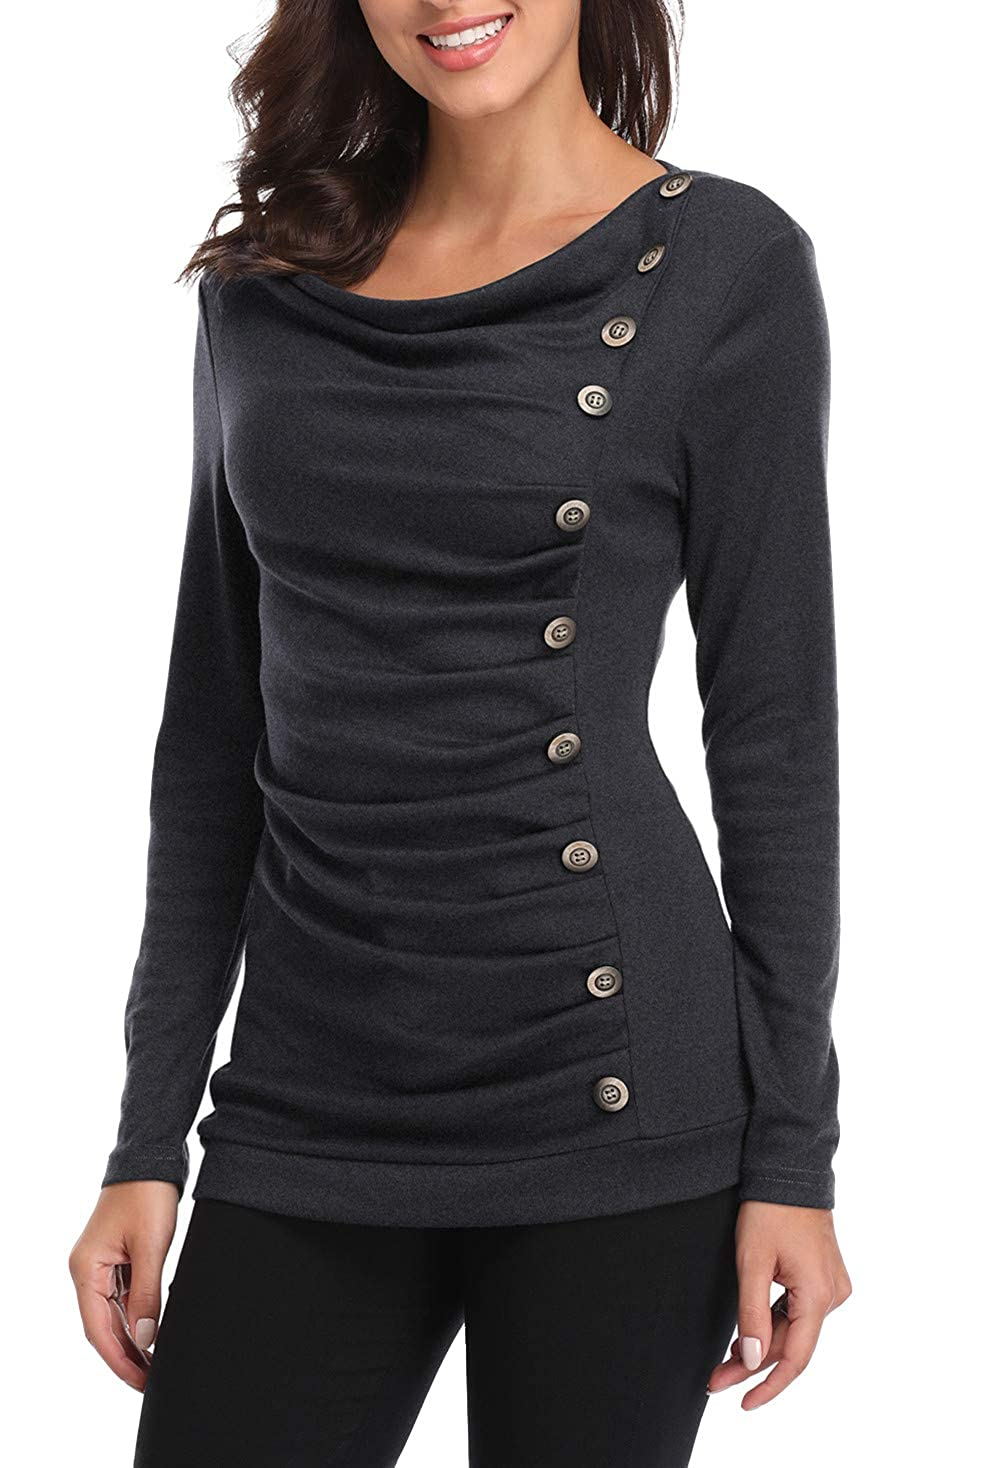 MISS MOLY Women Buttons Decor Ruched Front Cowl Neck Long Sleeves Tunic T-Shirt C-47-XS